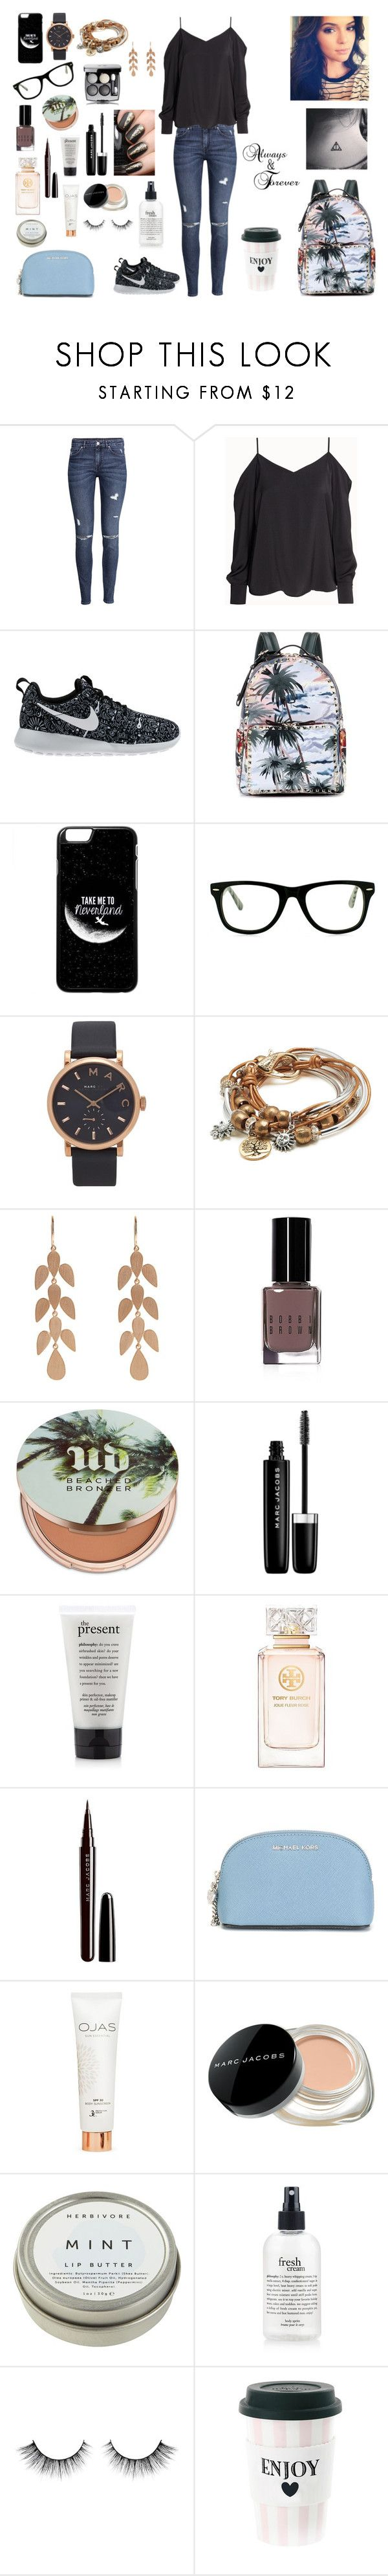 """""""Always & Forever"""" by izzapinkvs ❤ liked on Polyvore featuring H&M, NIKE, Valentino, Muse, Marc Jacobs, Lizzy James, Irene Neuwirth, Bobbi Brown Cosmetics, Urban Decay and Tory Burch"""